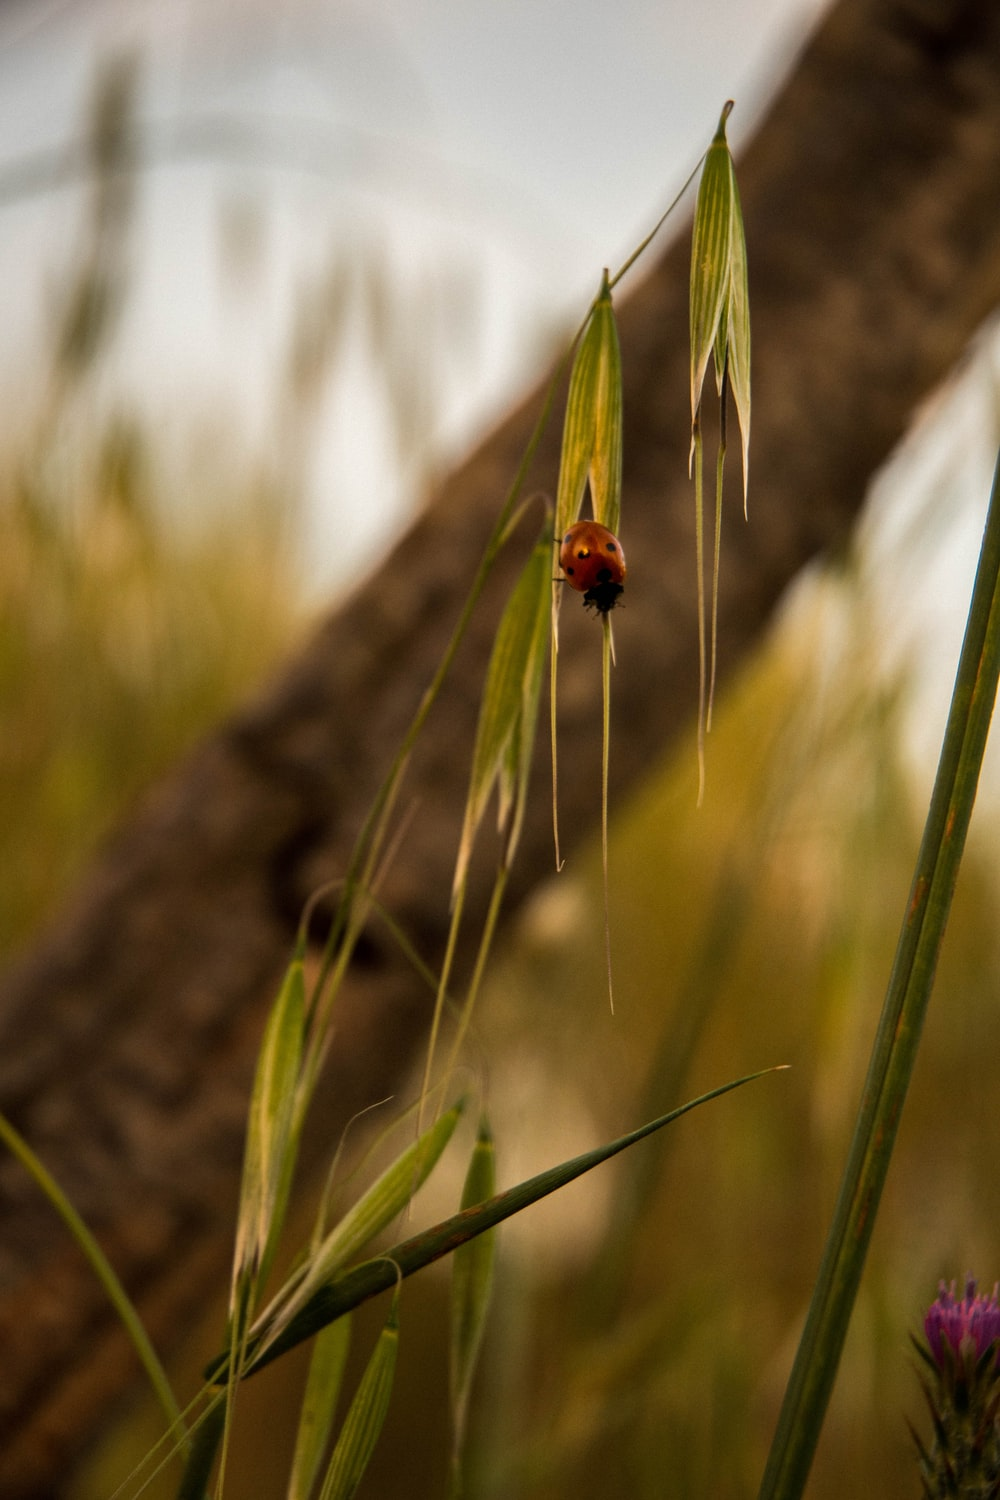 red ladybug perched on green plant during daytime